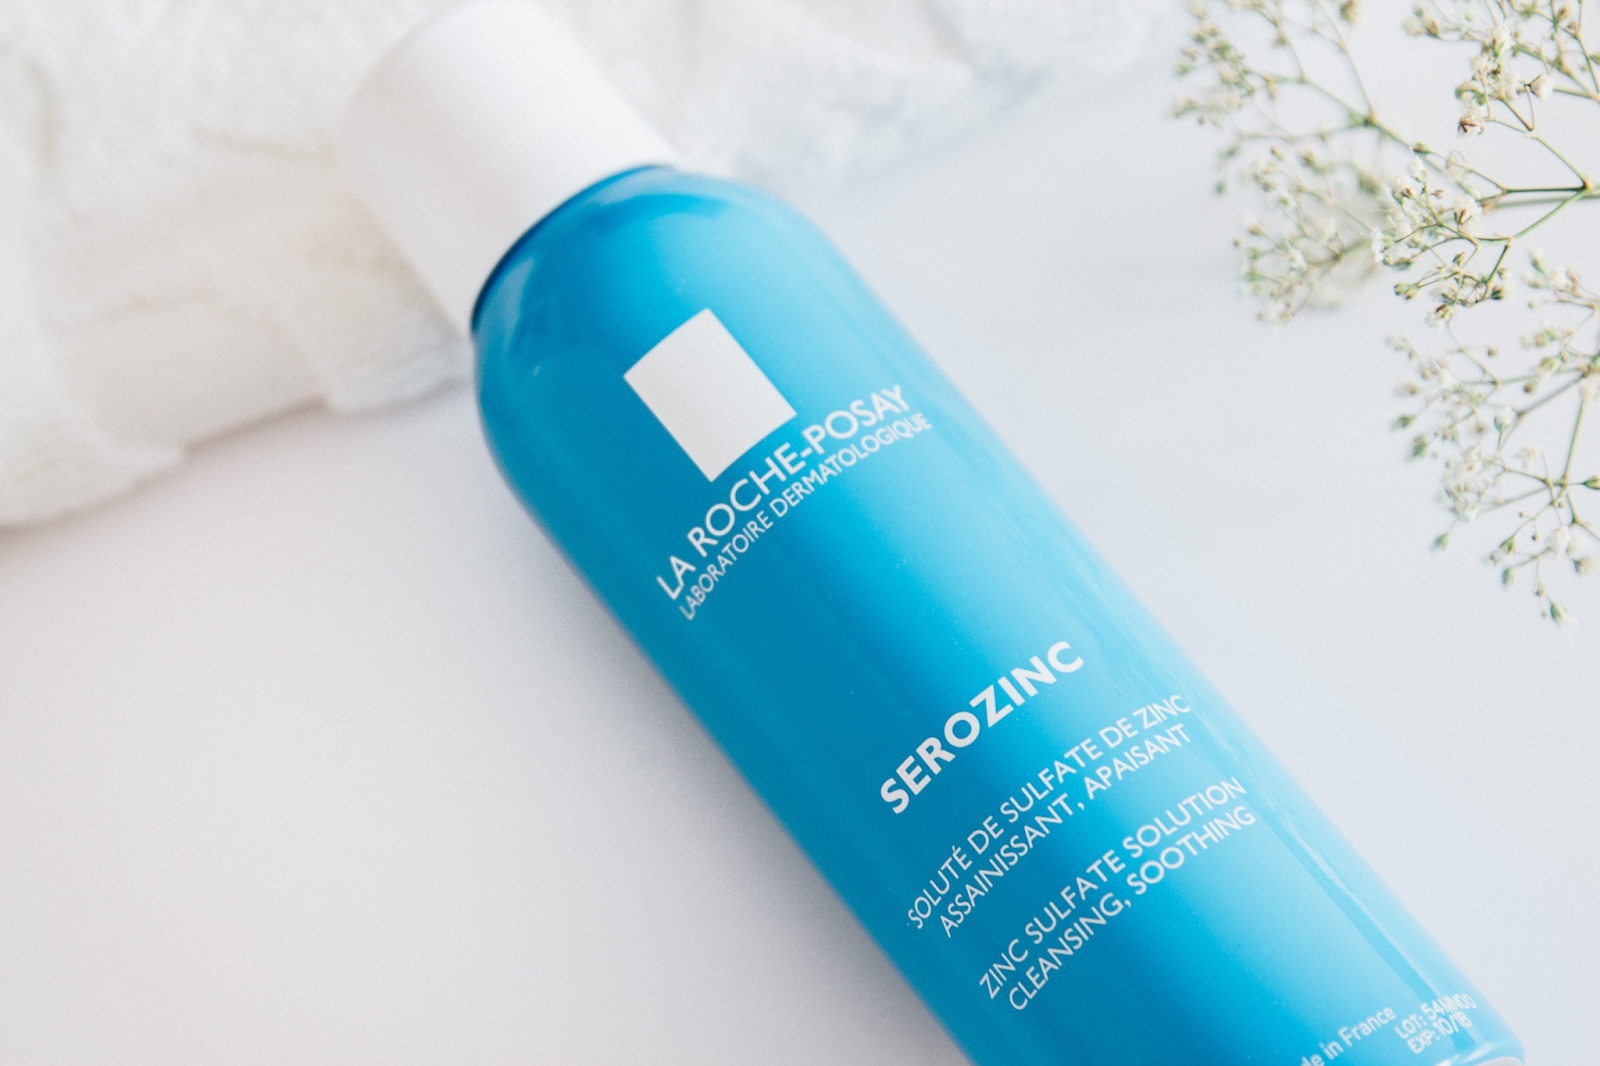 La-Roche-Posay-Serozinc-Sulfate-Solution-Cleansing-Soothing